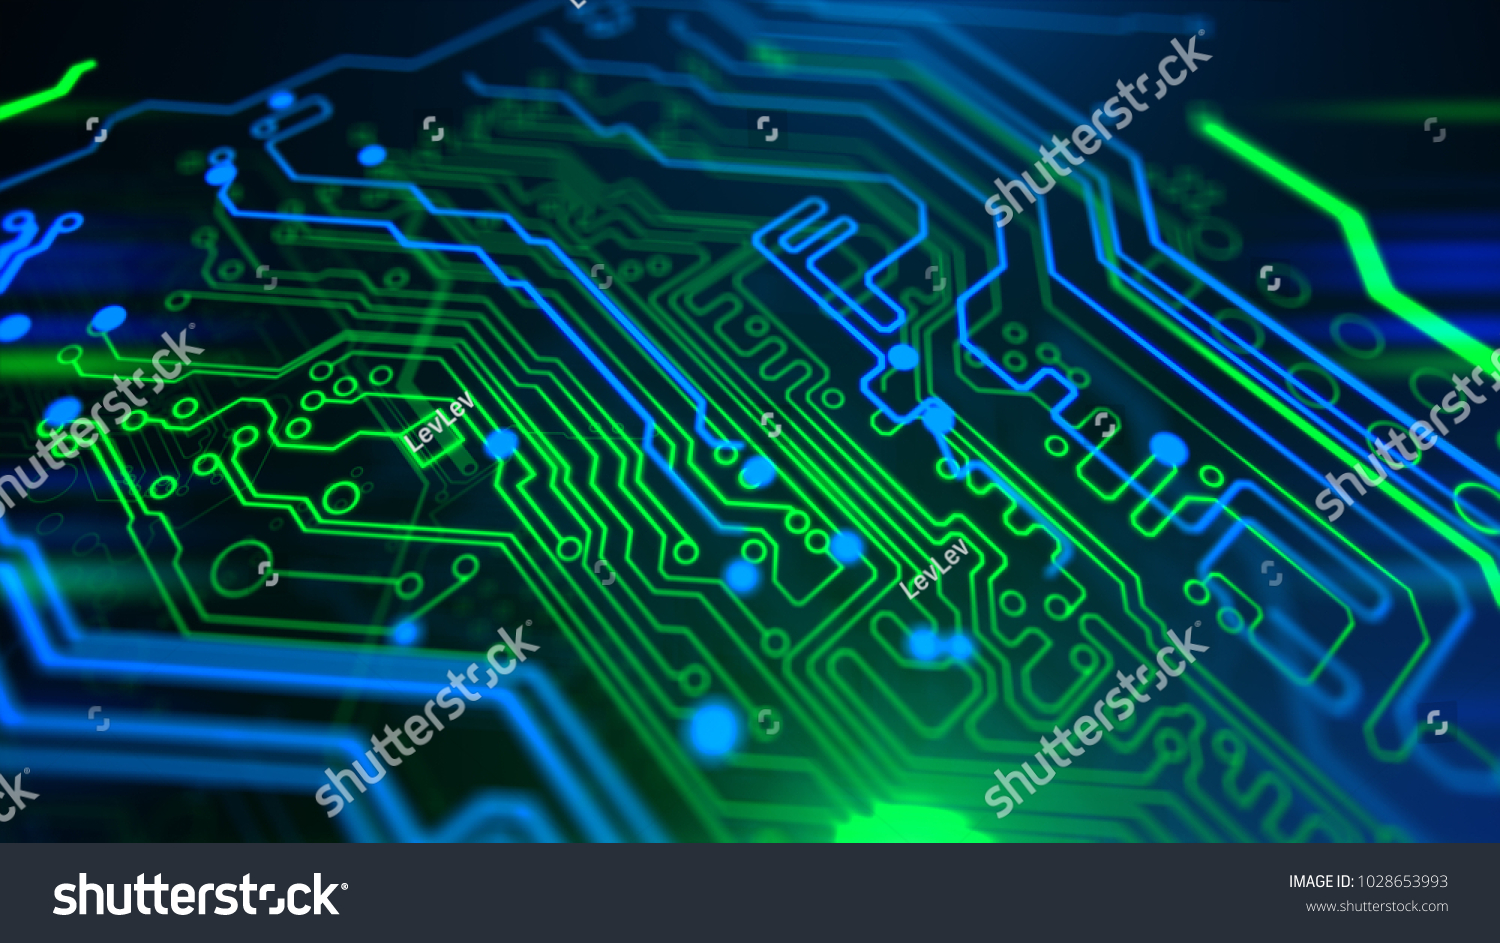 Blue Green Micro Chip Background Digital Stock Illustration Pcb The Printedcircuitboard 3d Royalty Free Photography With Integrated Network Technology Printed Circuit Board